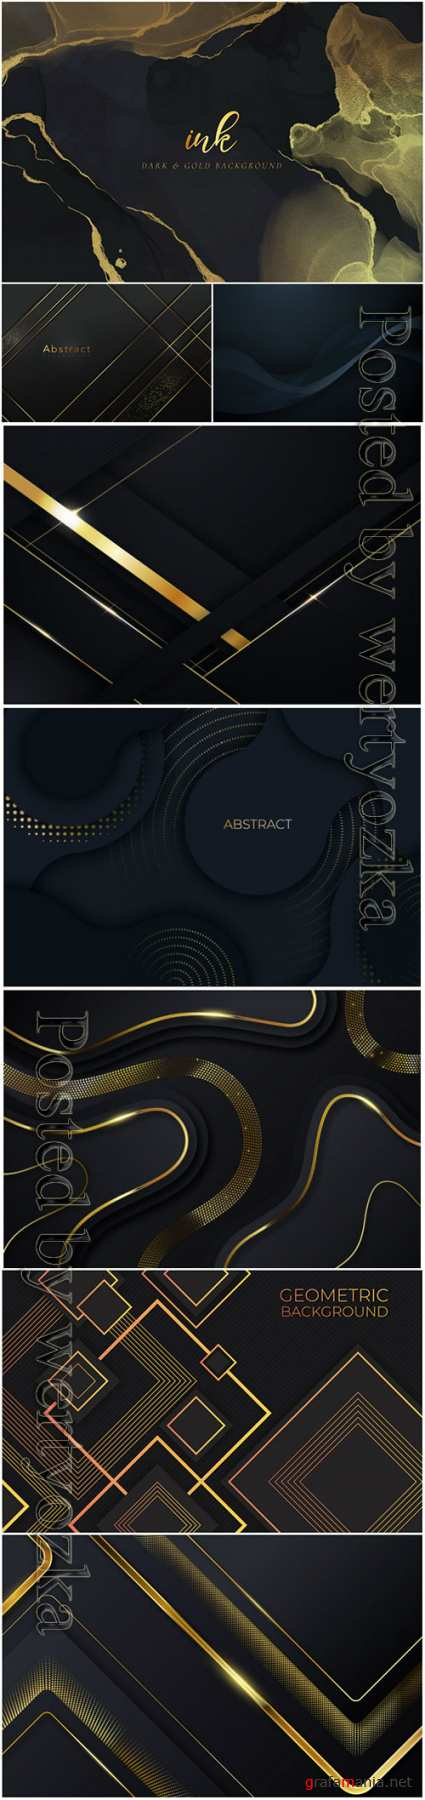 Luxury abstract backgrounds in vector # 5